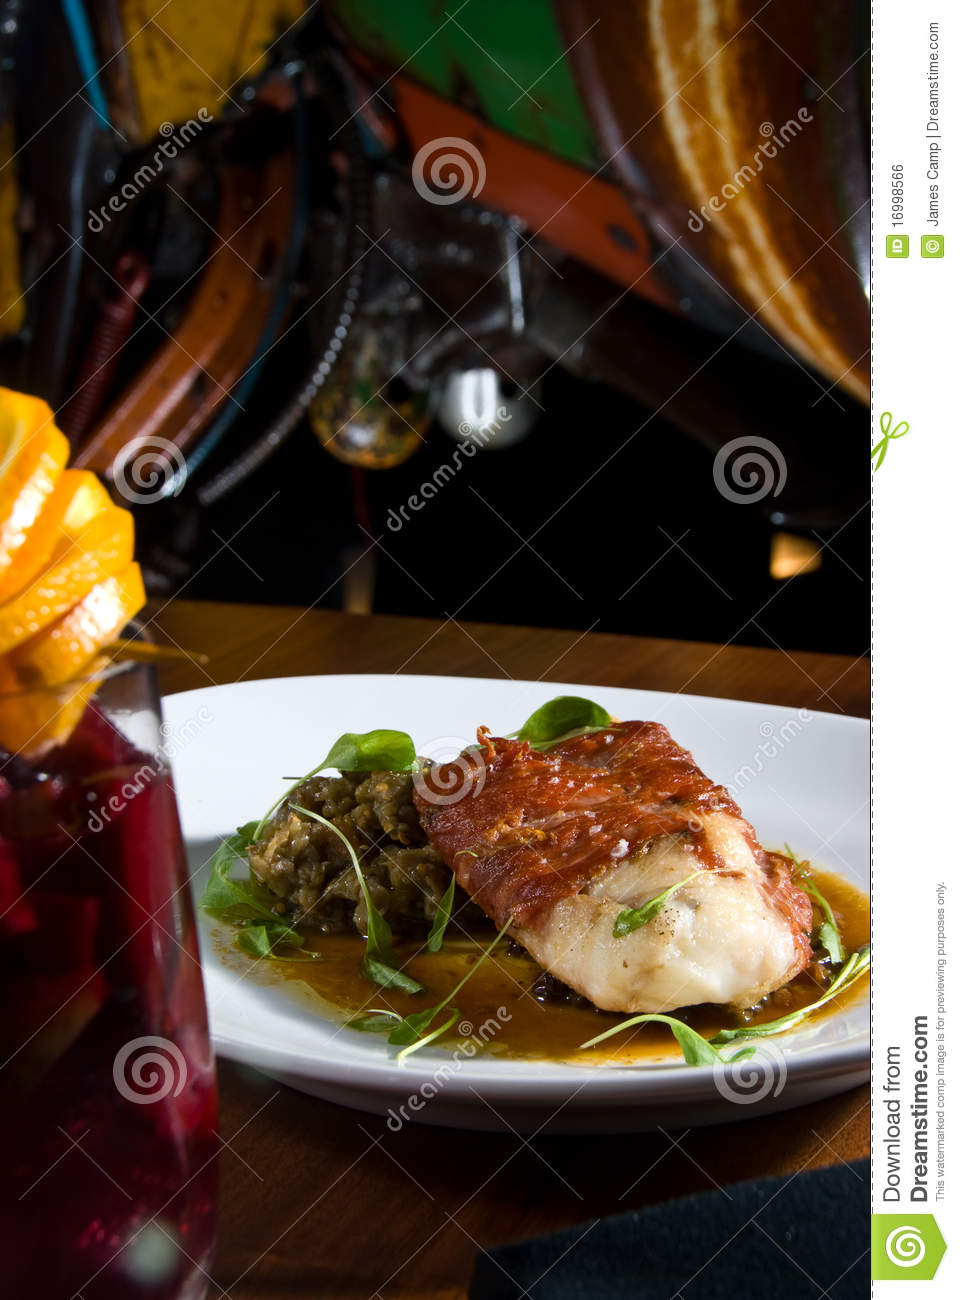 Bacon wrapped fish royalty free stock image image 16998566 for Bacon wrapped fish